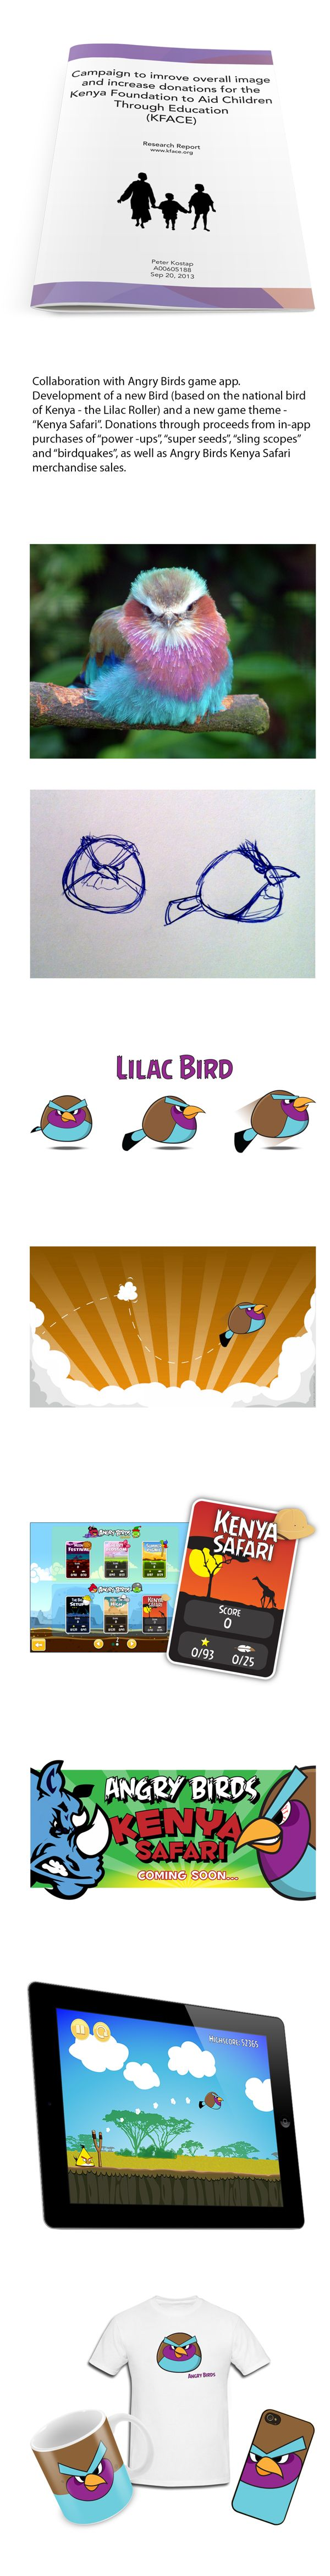 Angry Birds/KFACE collaboration (proposal)